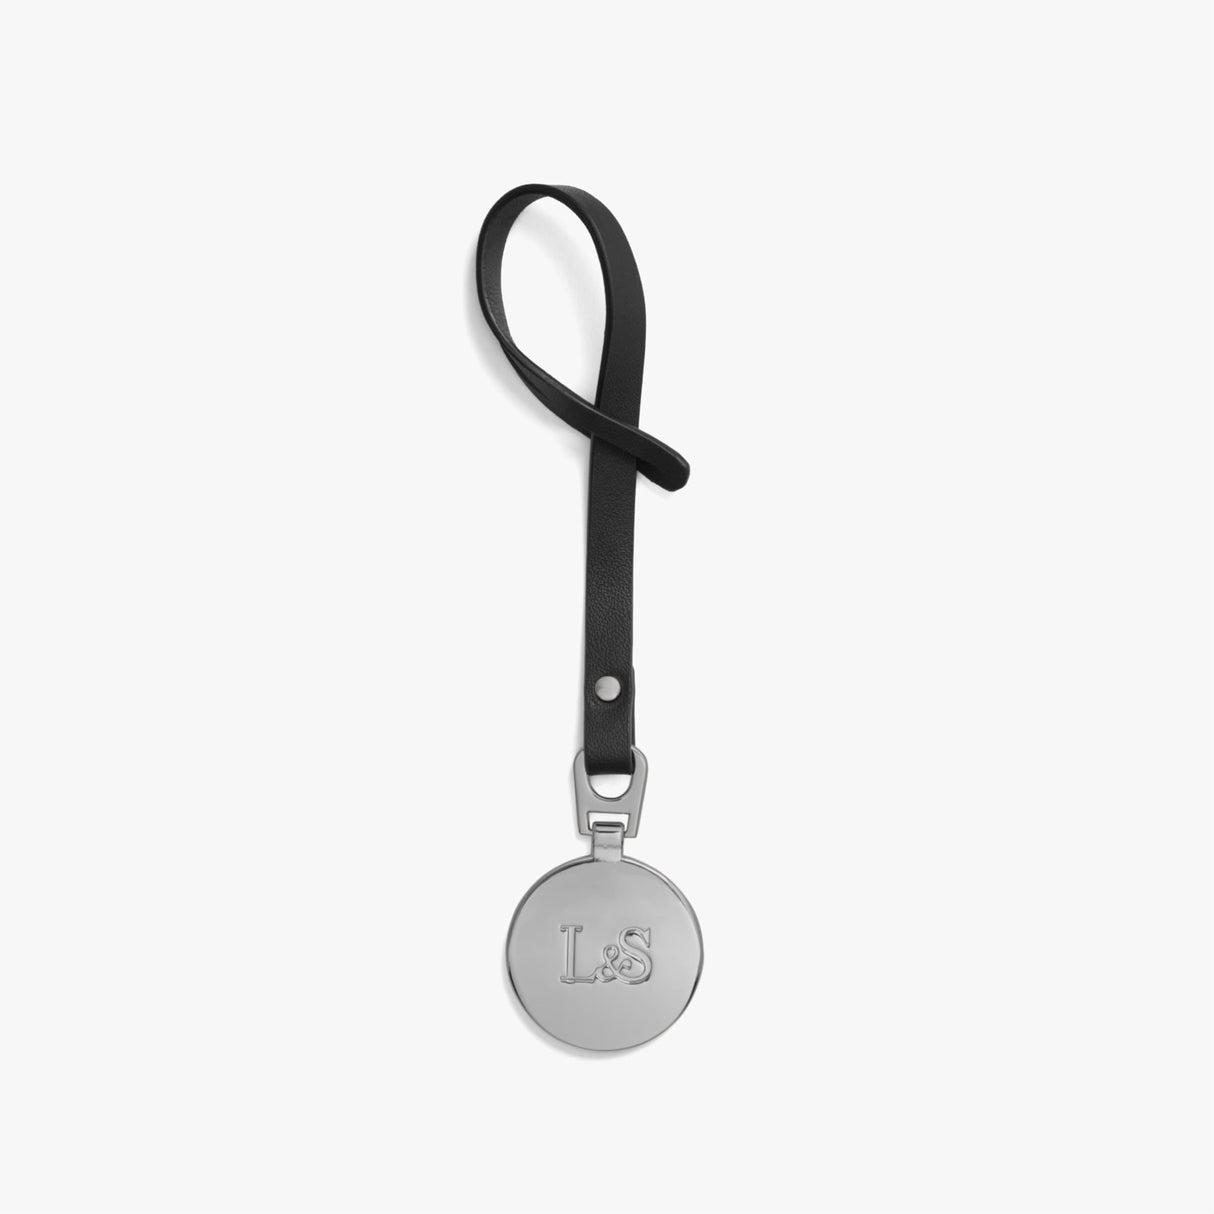 Front - L&S Medallion - Nappa Leather - Black / Silver - Small Accessory - Lo & Sons